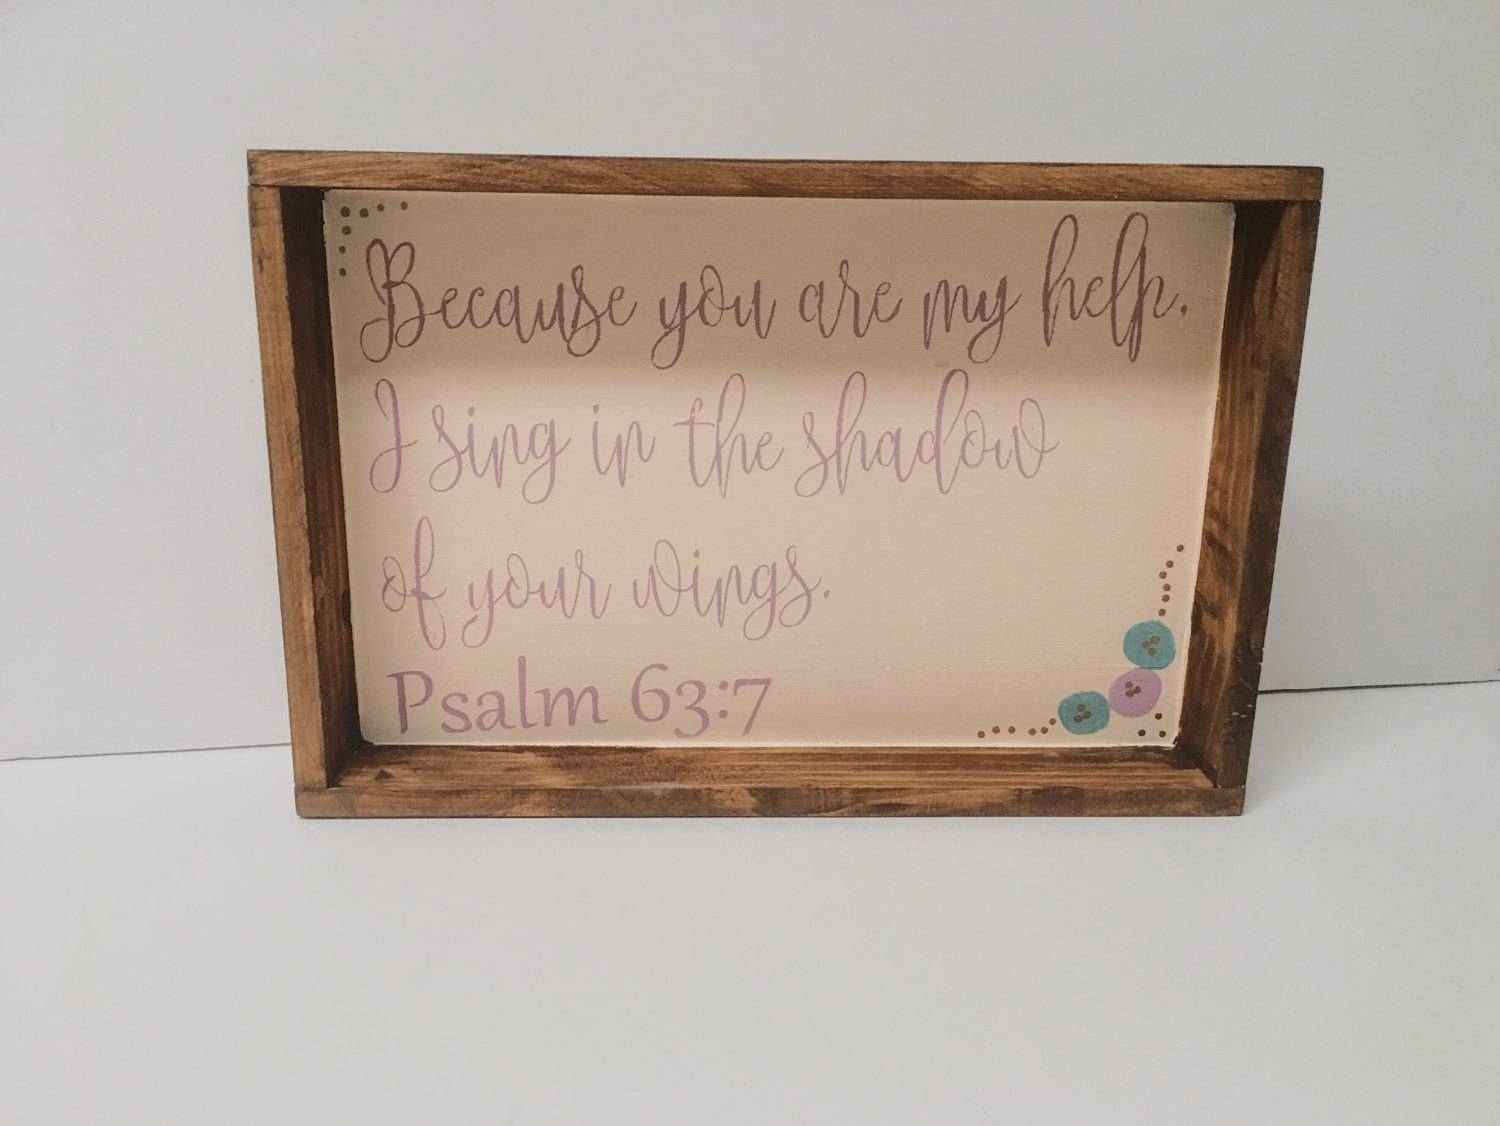 Christian Wall Art, Christian Shelf Art, Christian Wood Art Throughout Most Popular Bible Verses Framed Art (View 13 of 25)